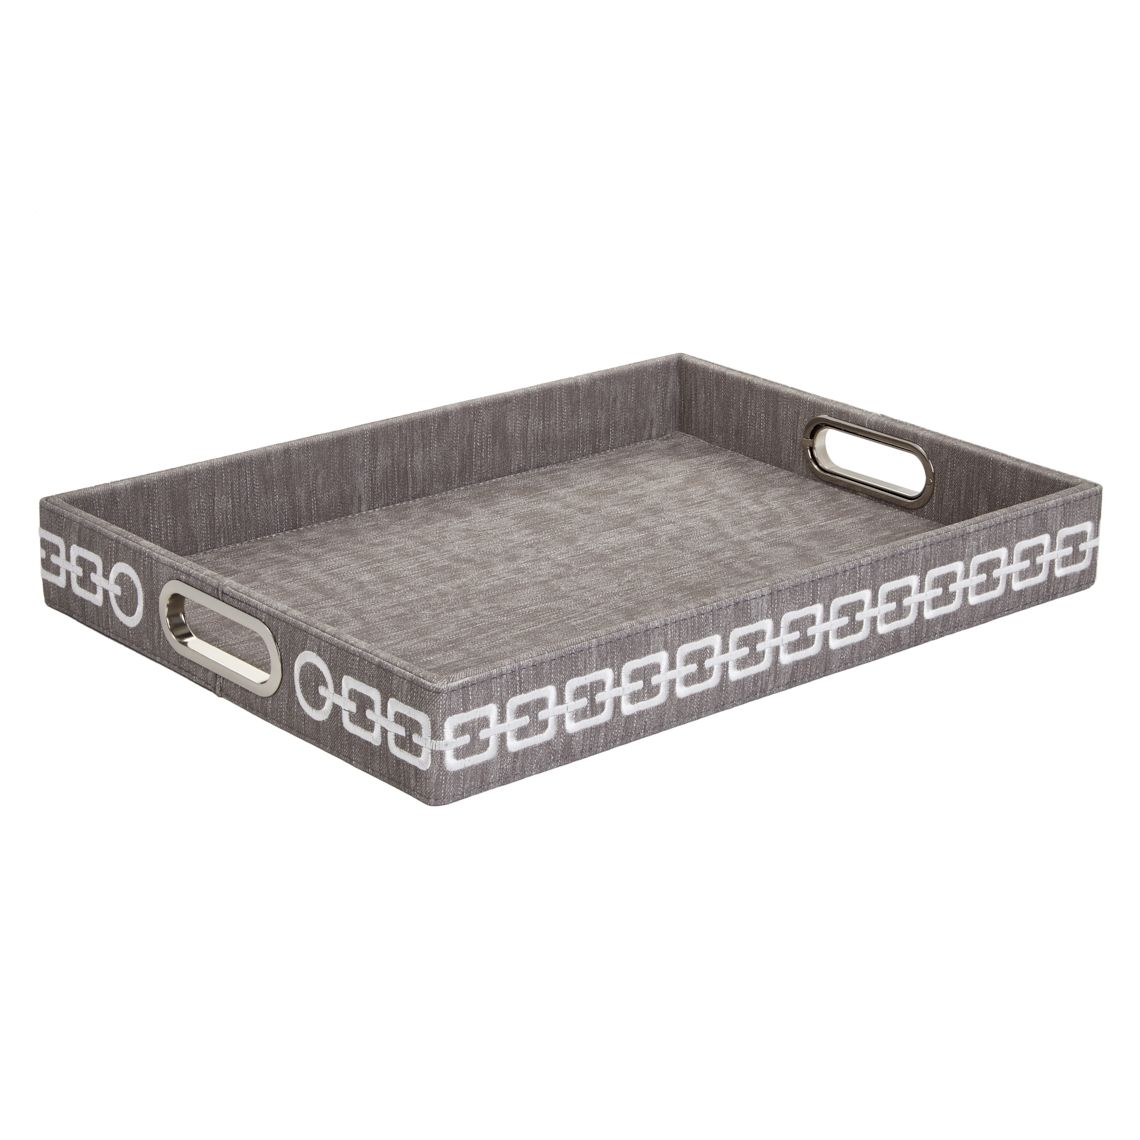 6000 rectangular grey tray with white embroidery by